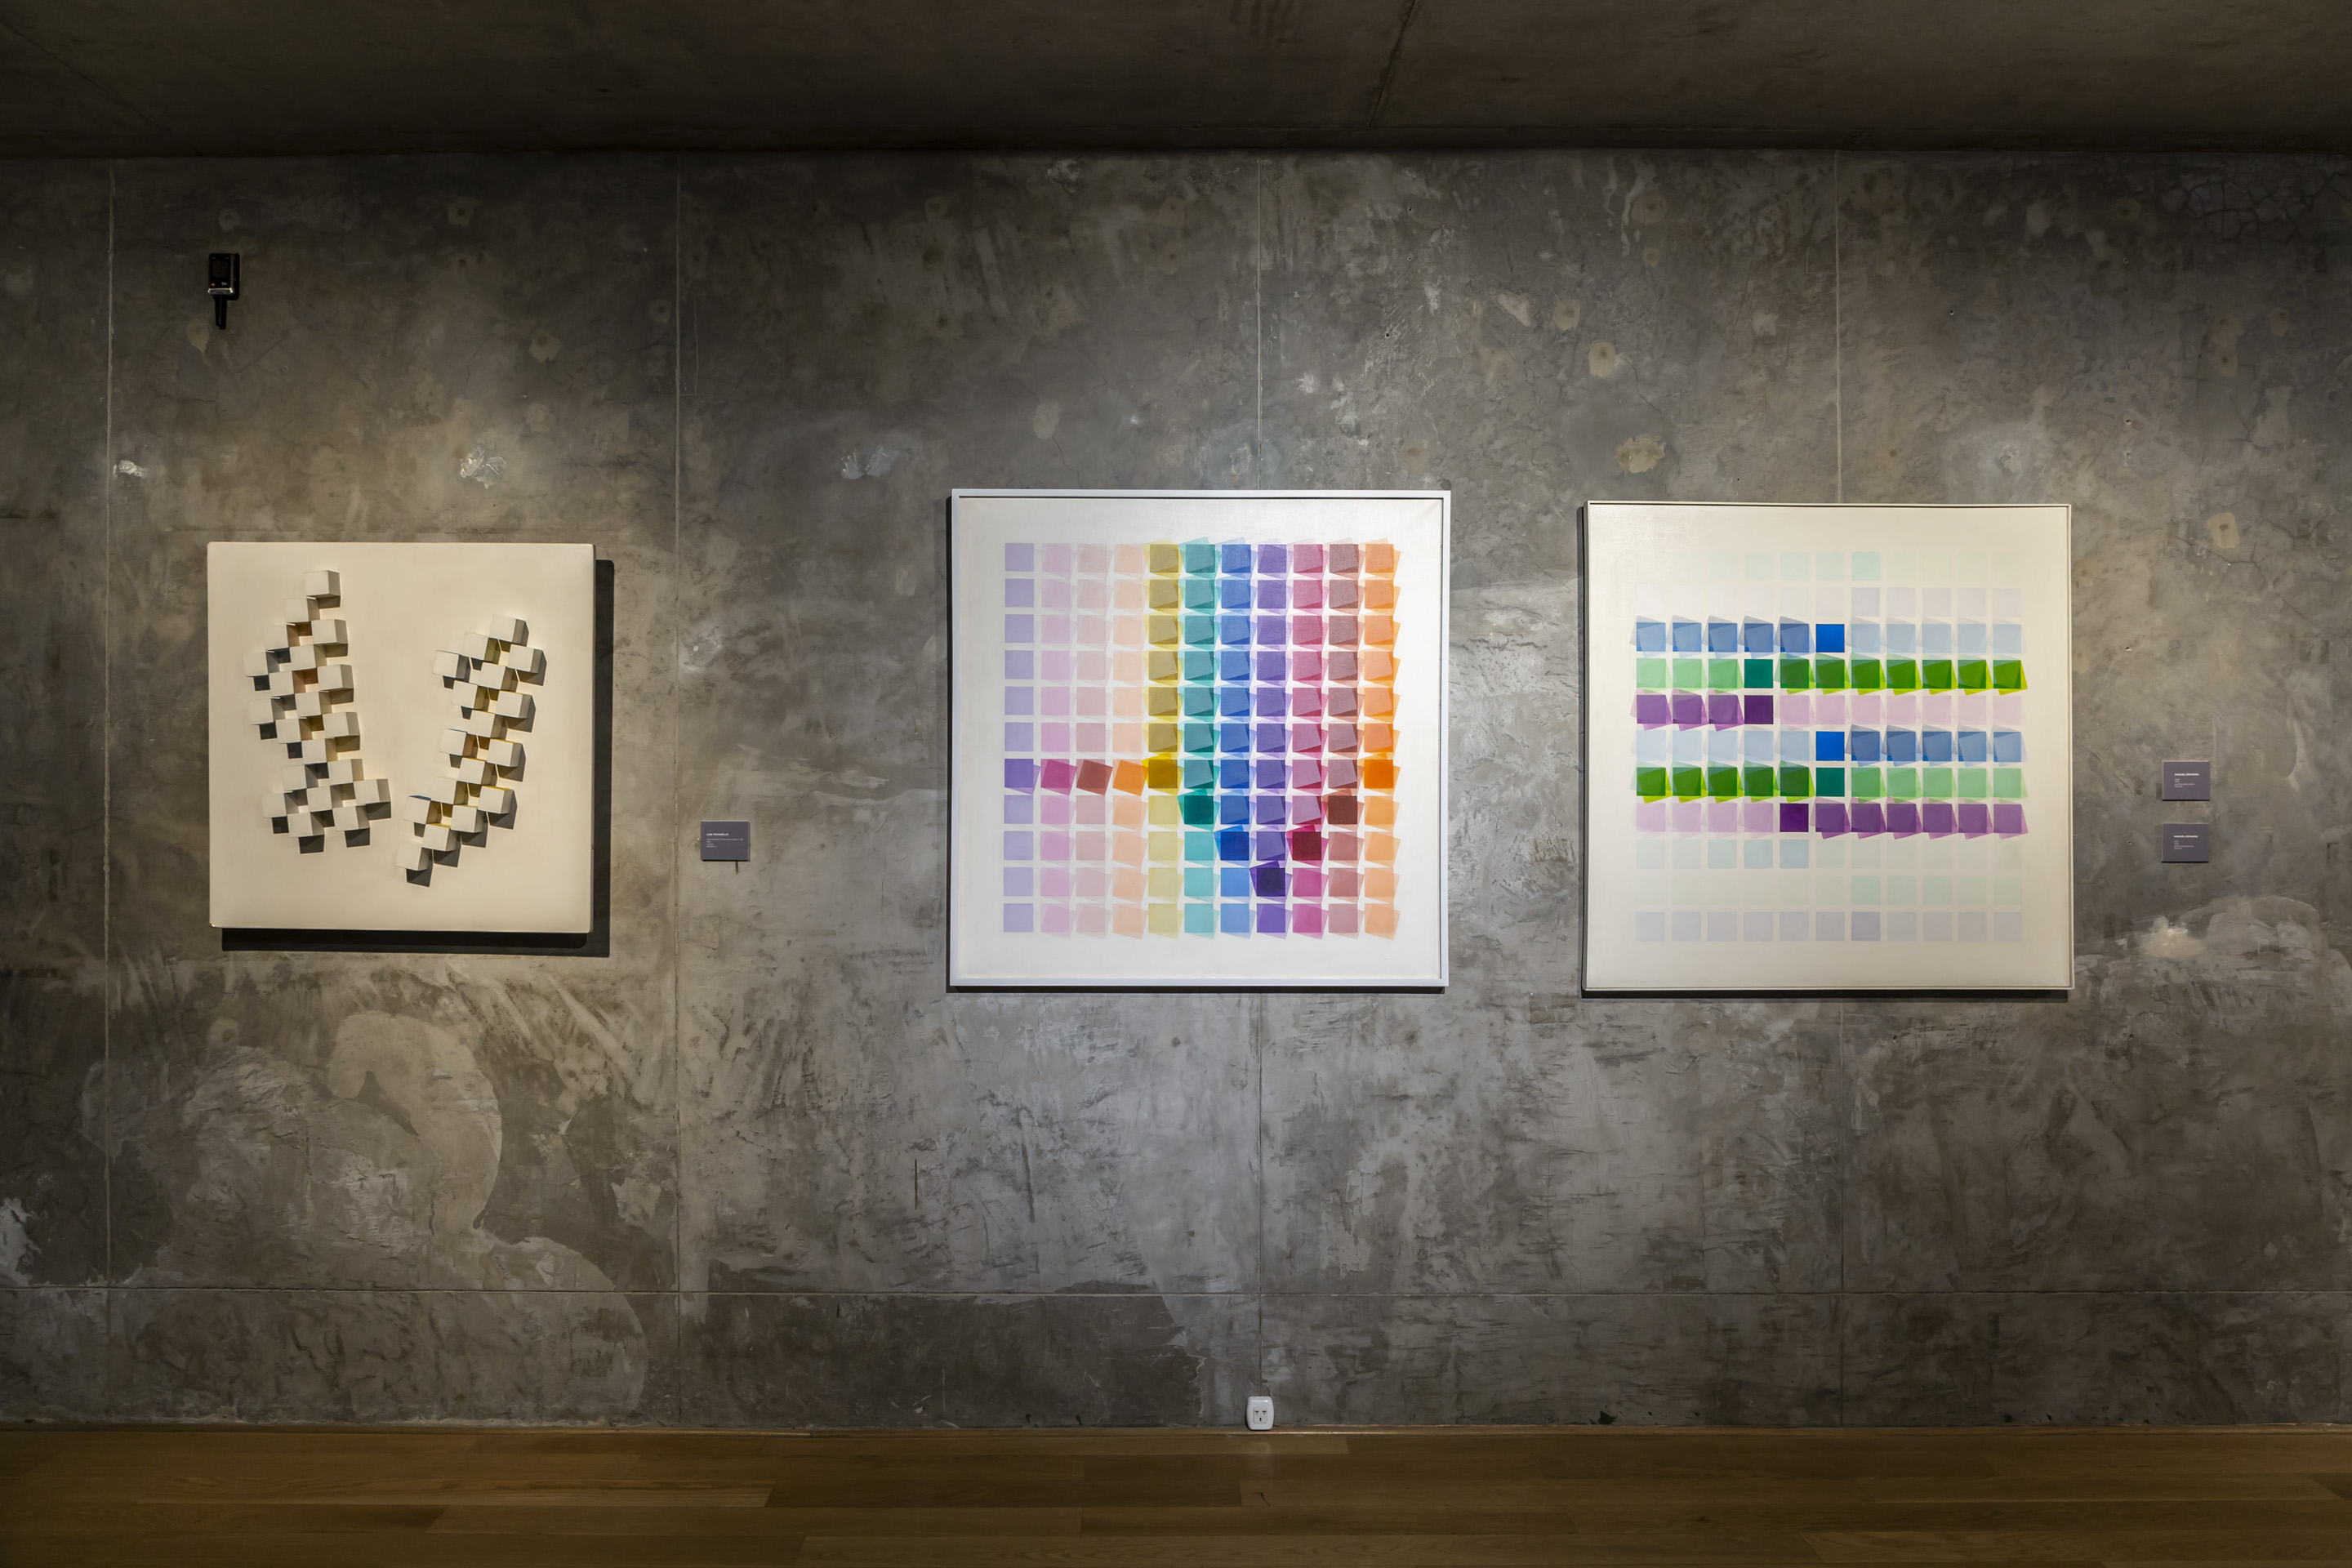 Works by Luis Tomasello (left) and Manuel Espinosa (right). Photo: Bruto Studio. Courtesy of MACBA